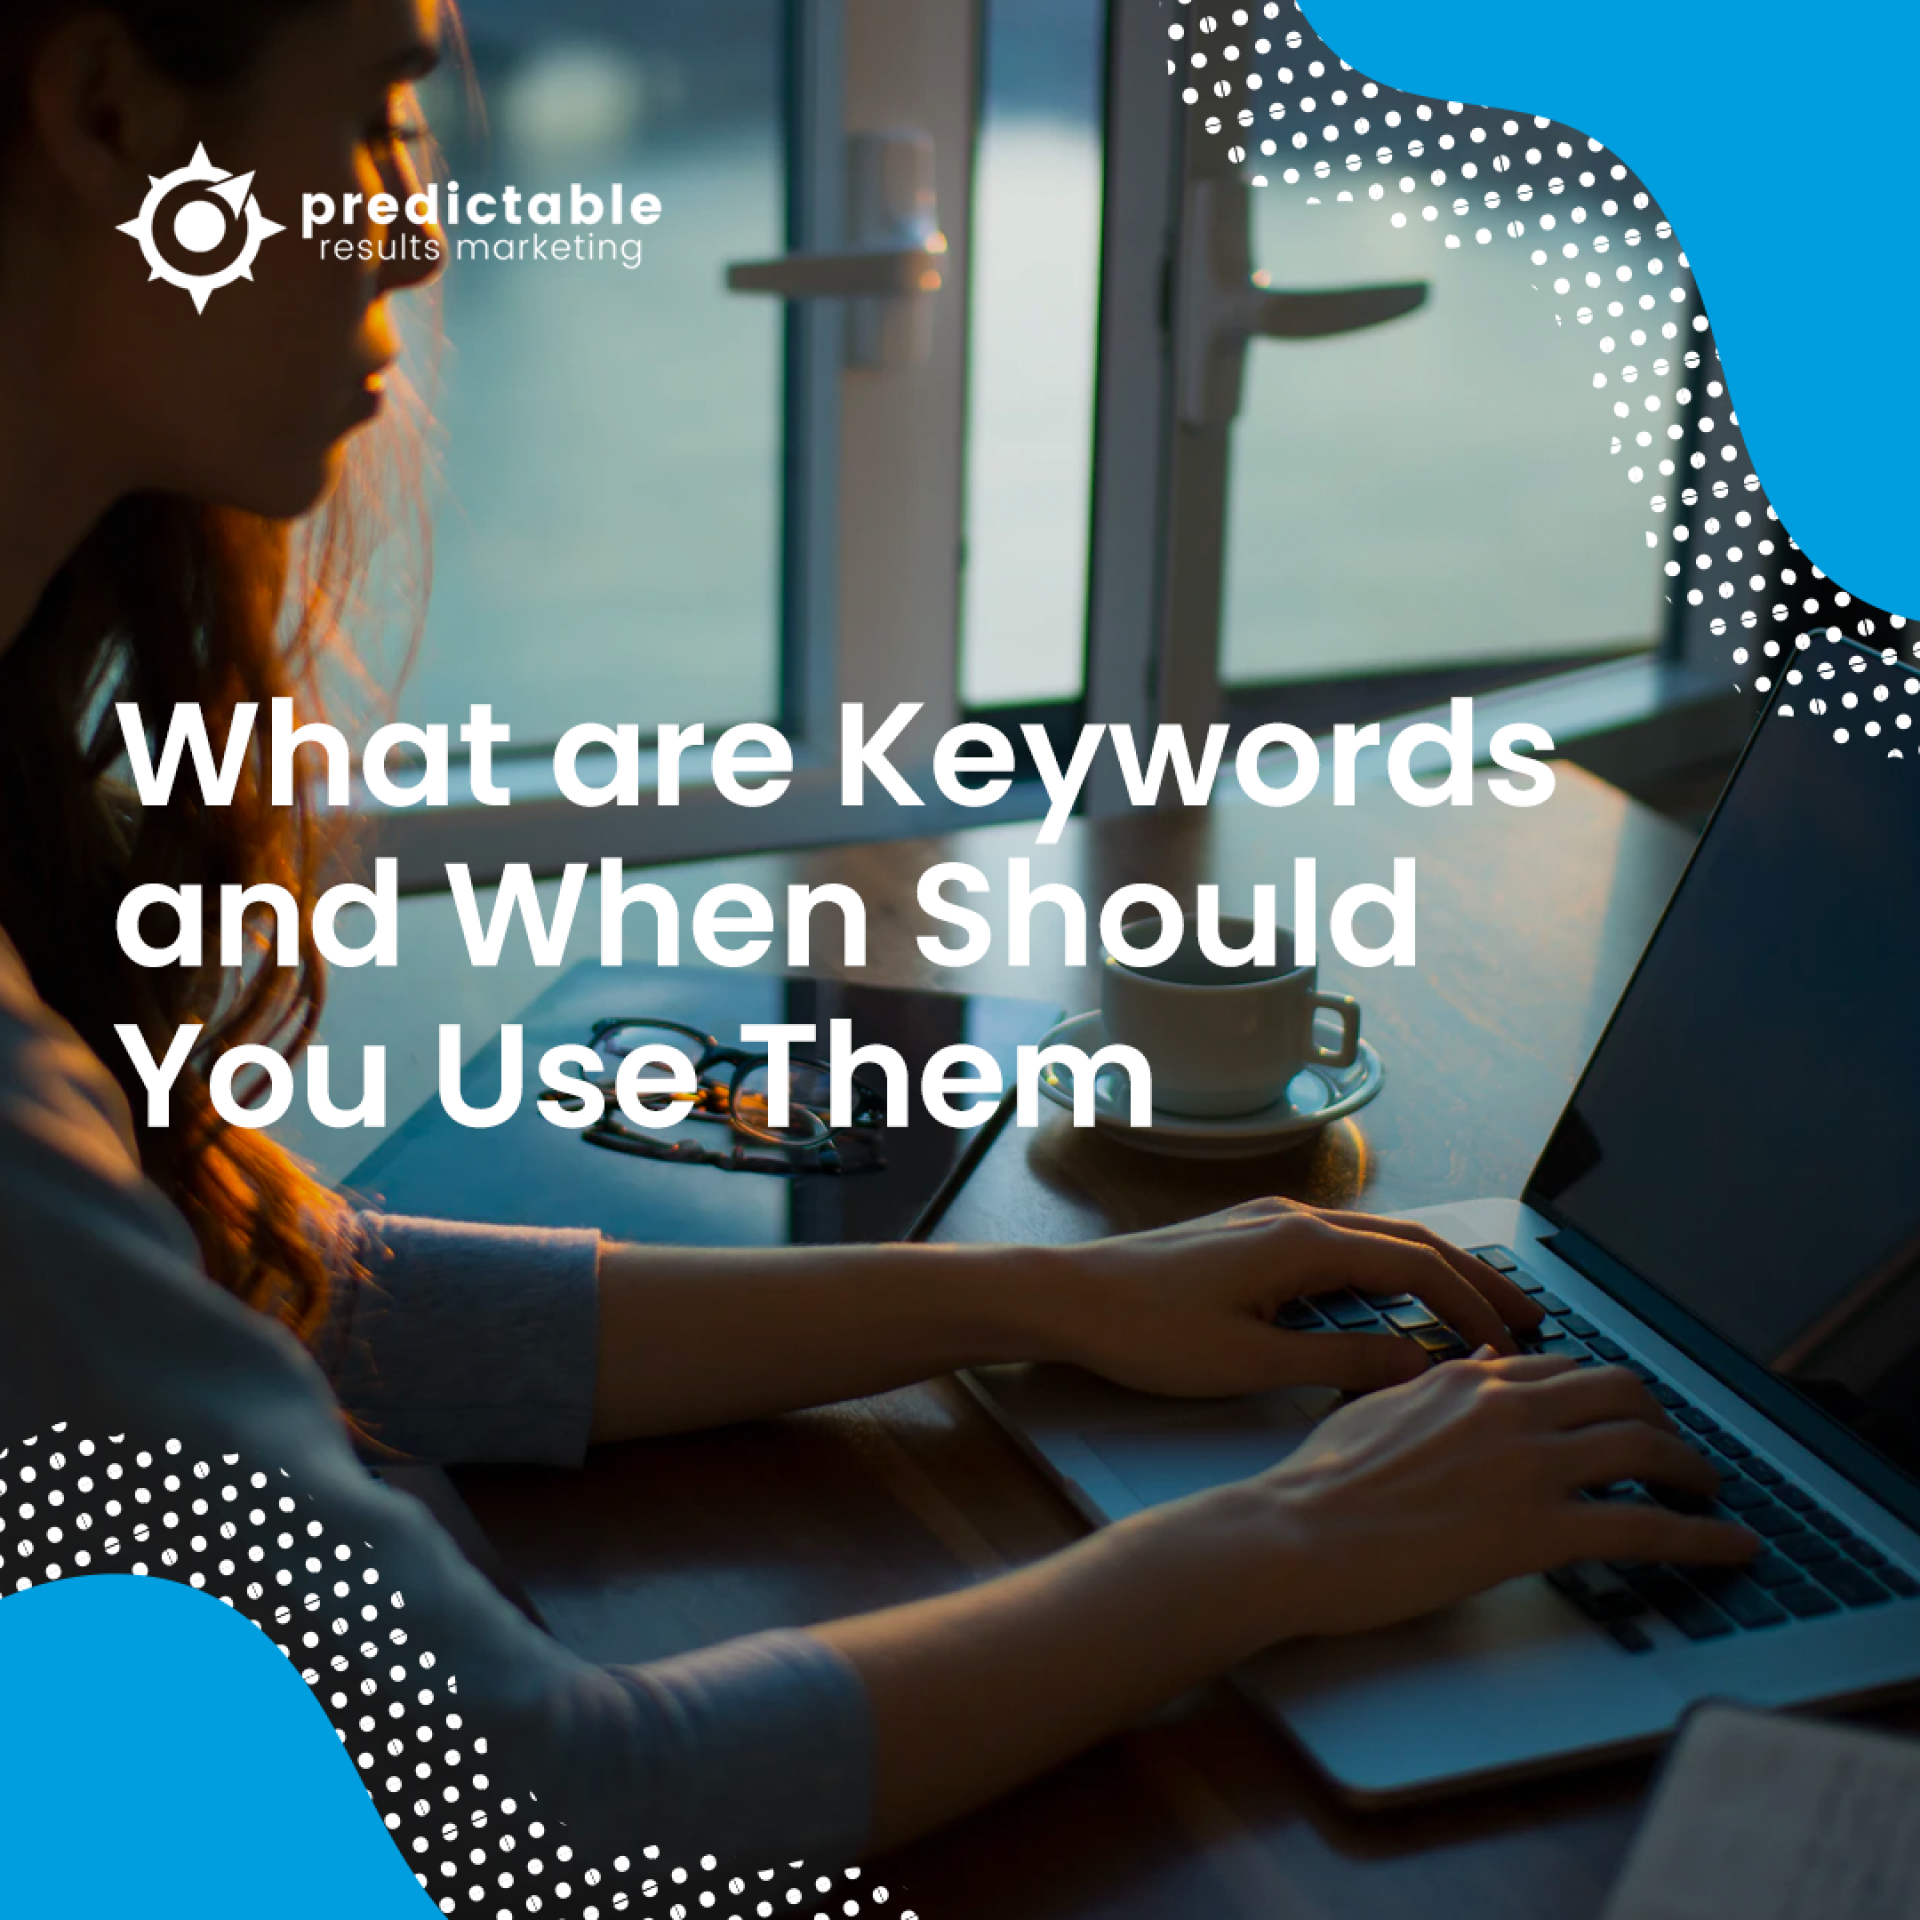 What are Keywords and When Should You Use Them